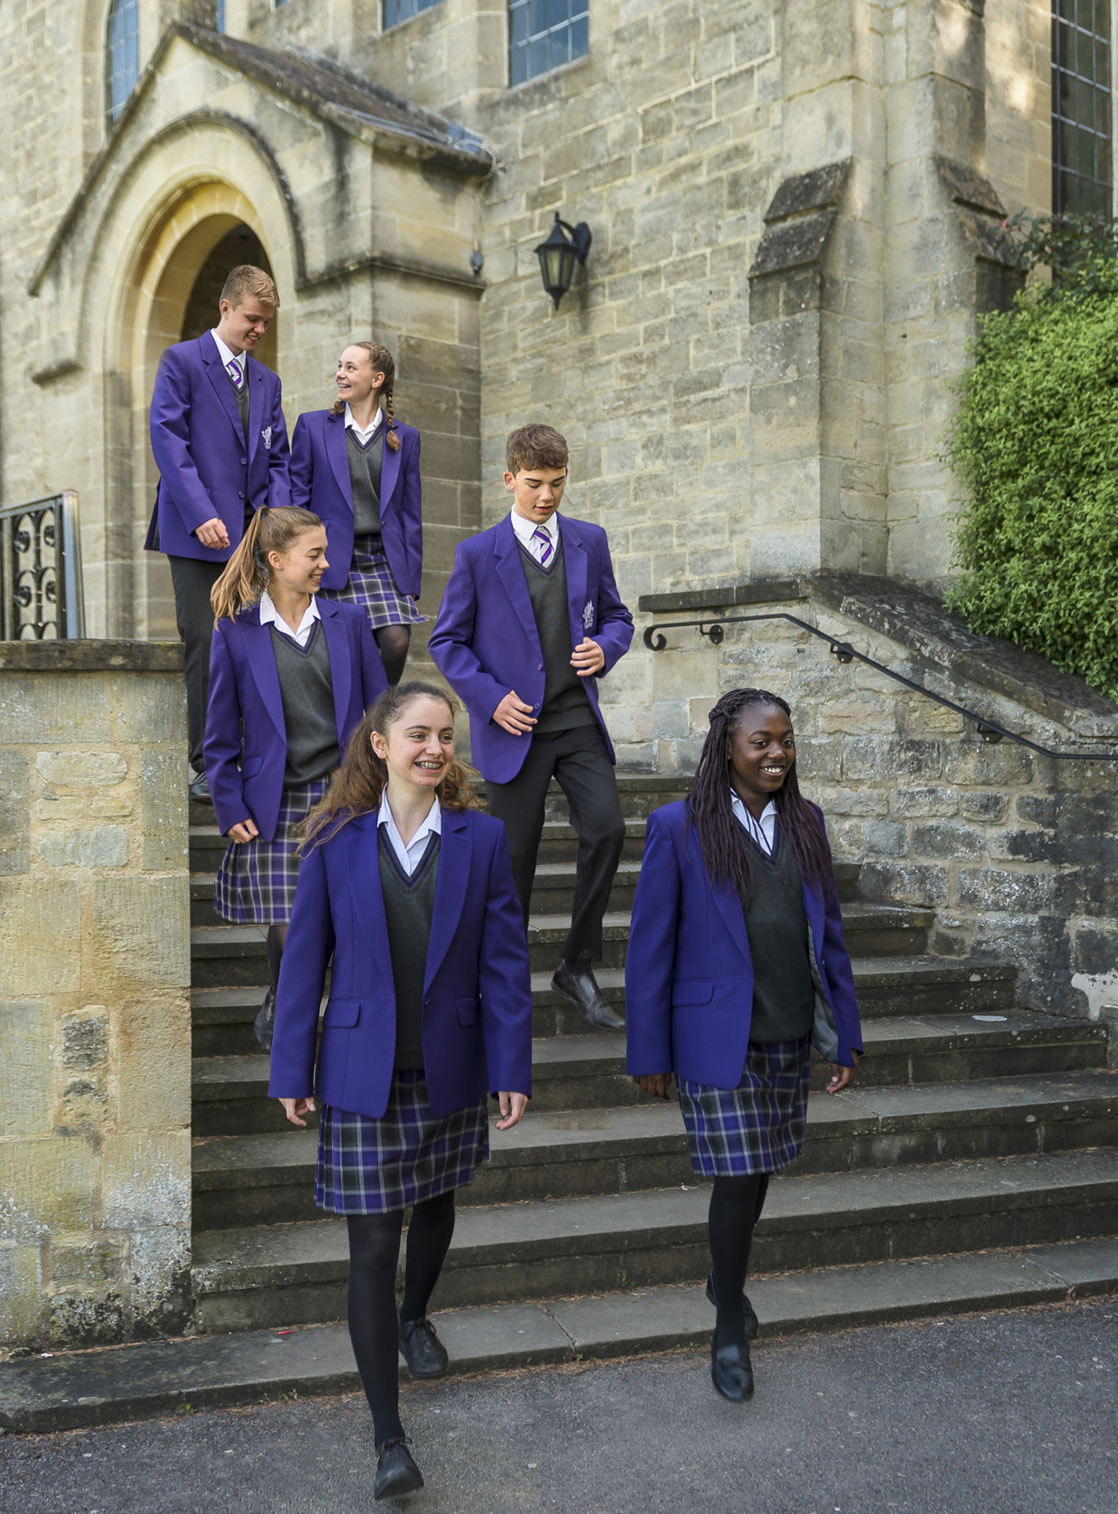 wycliffe pupils walking down stairs